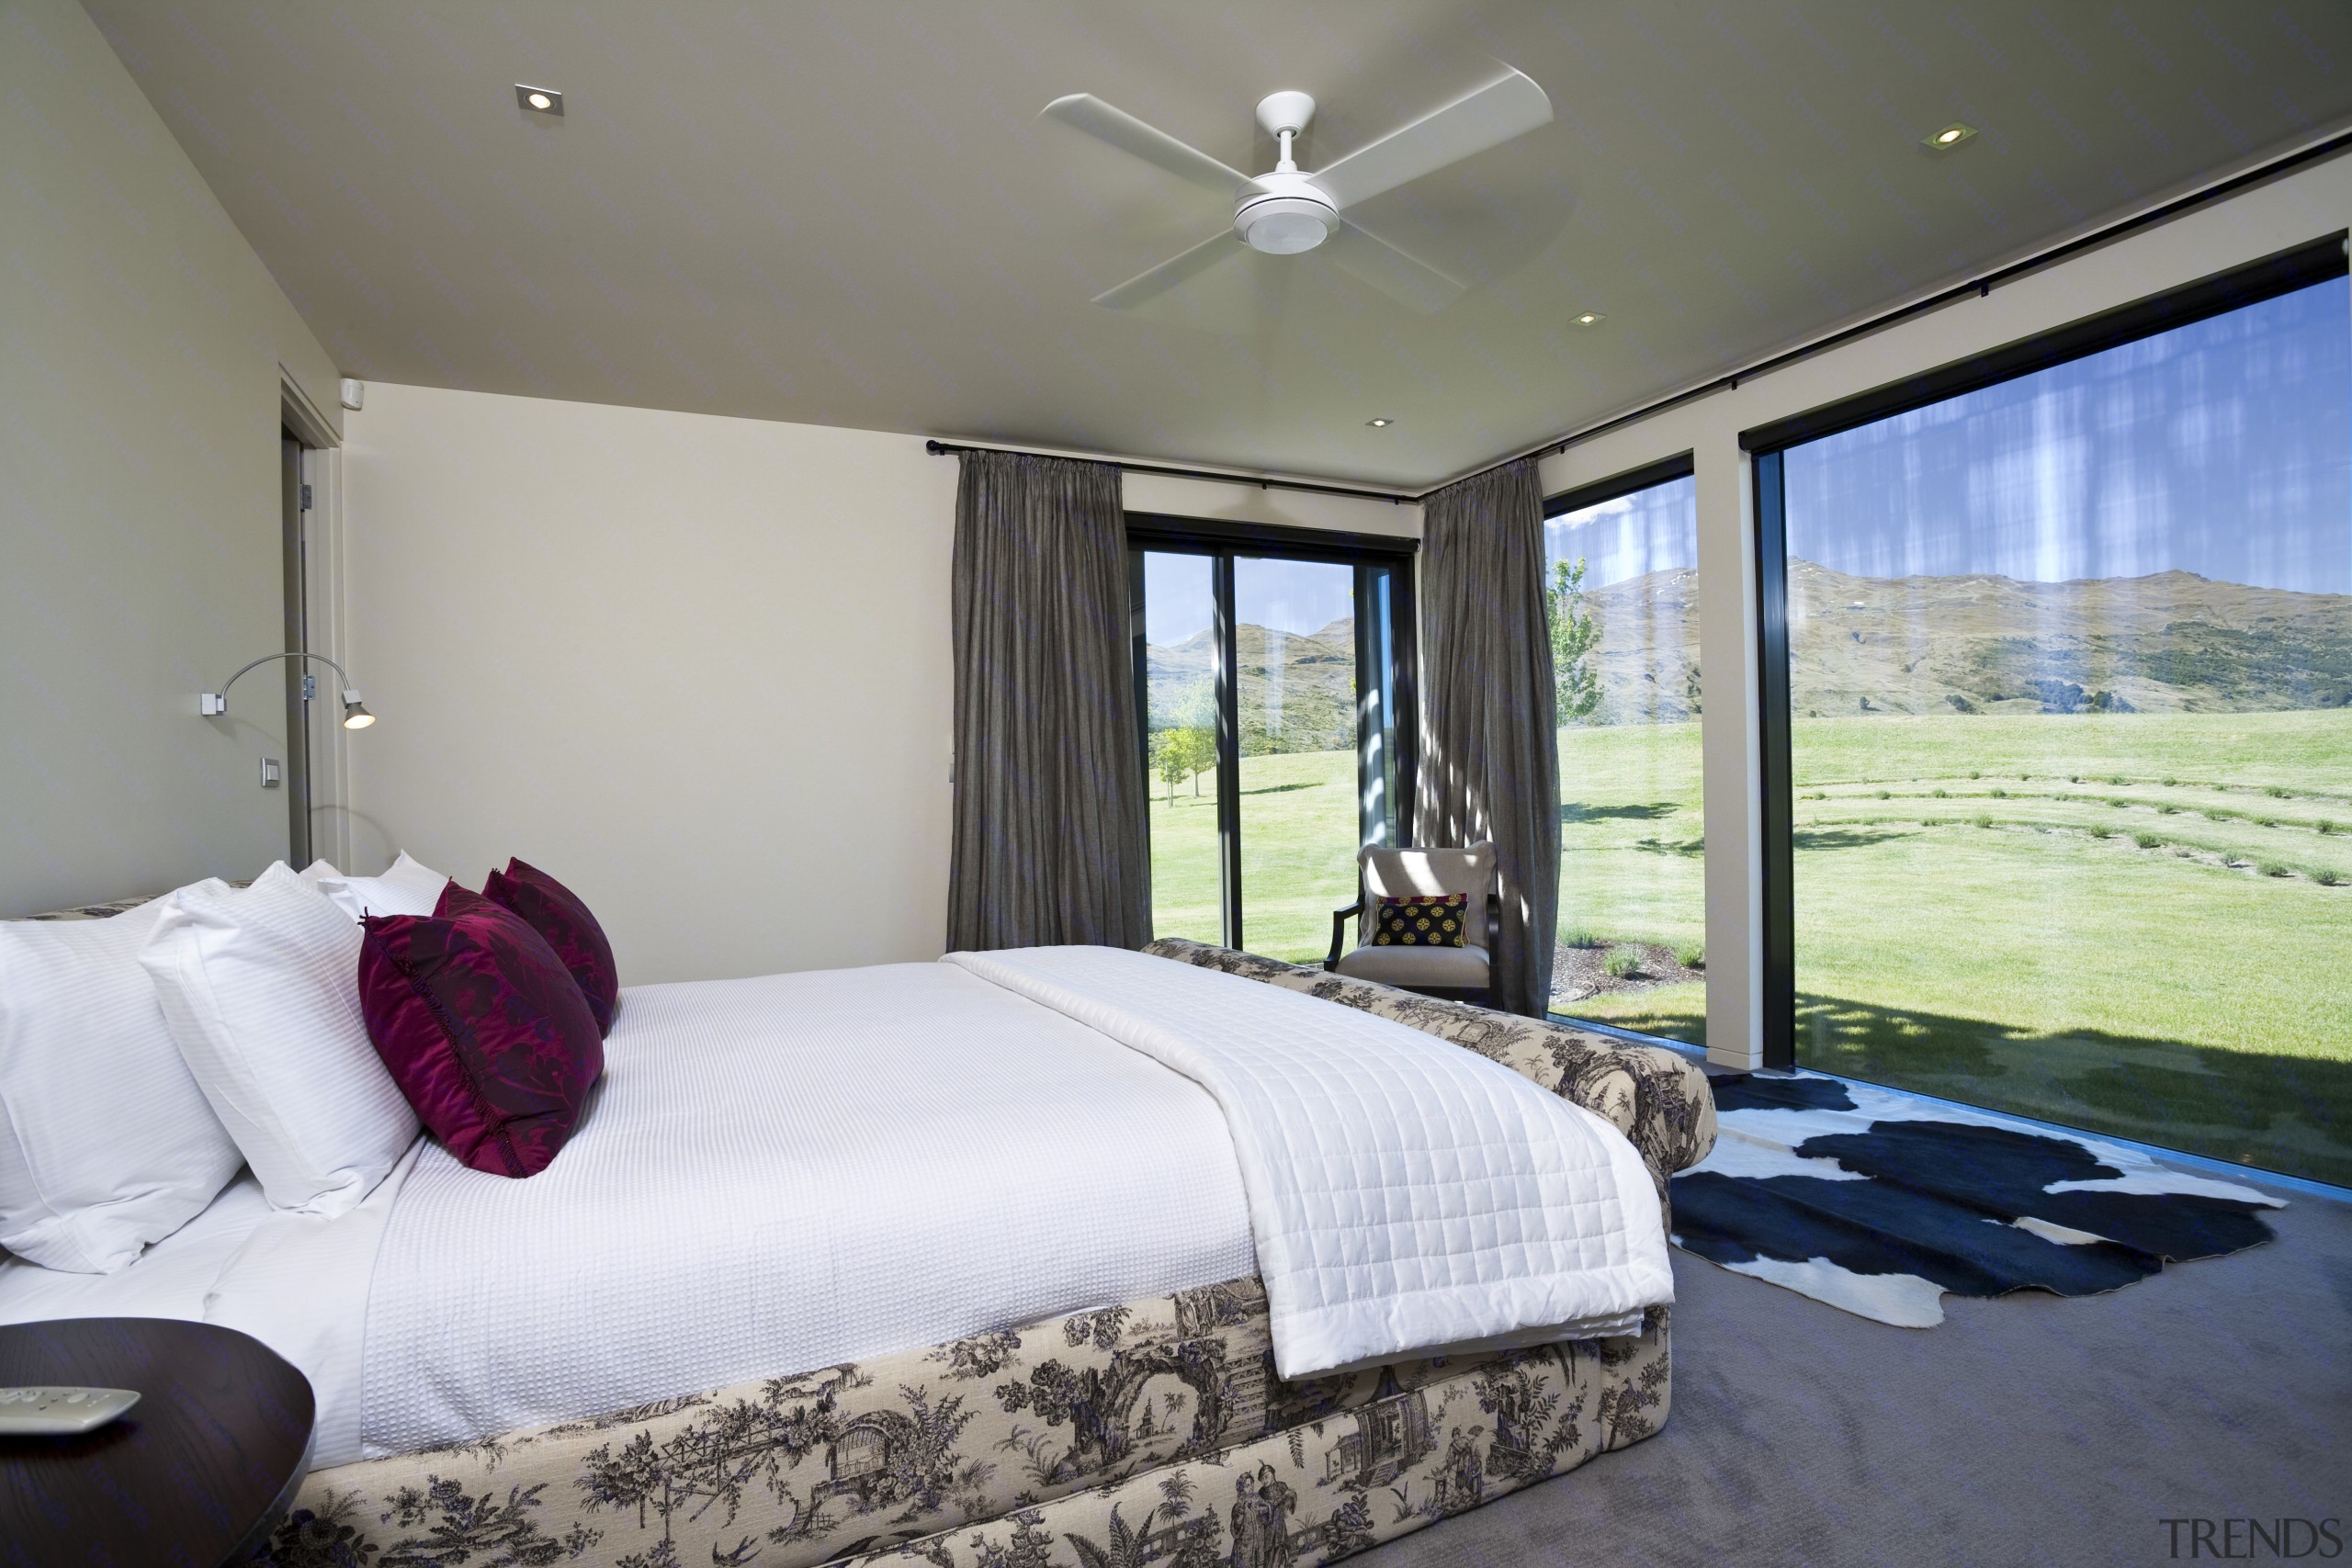 View Of Bedroom Which Features Floor To Ceiling Glass Sliding Doors, Carpeted